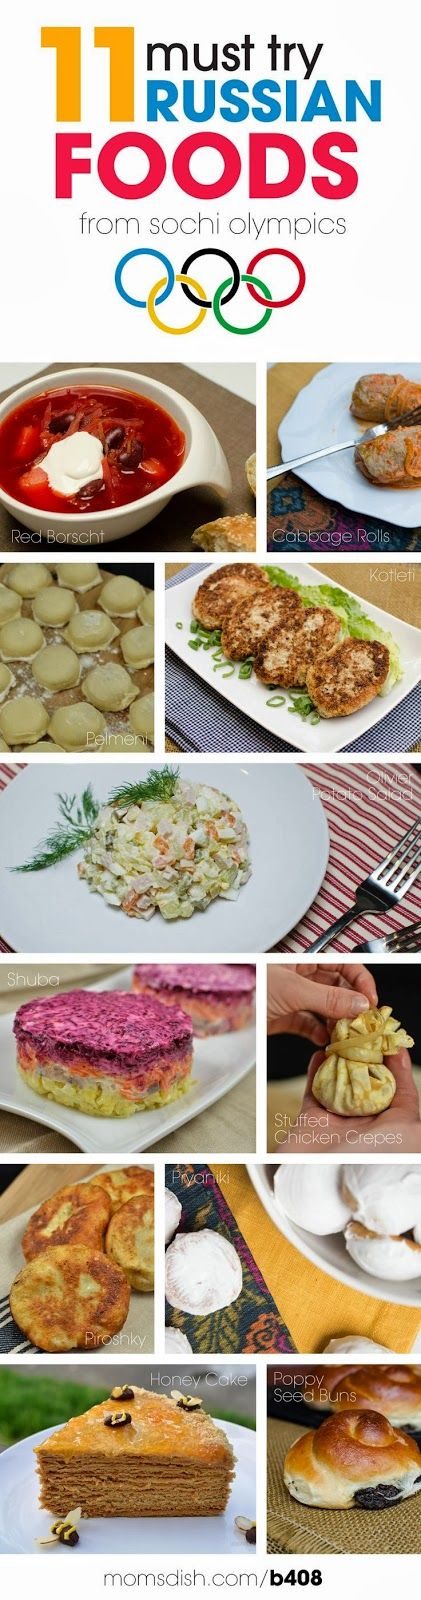 11 Must Try Russian Foods